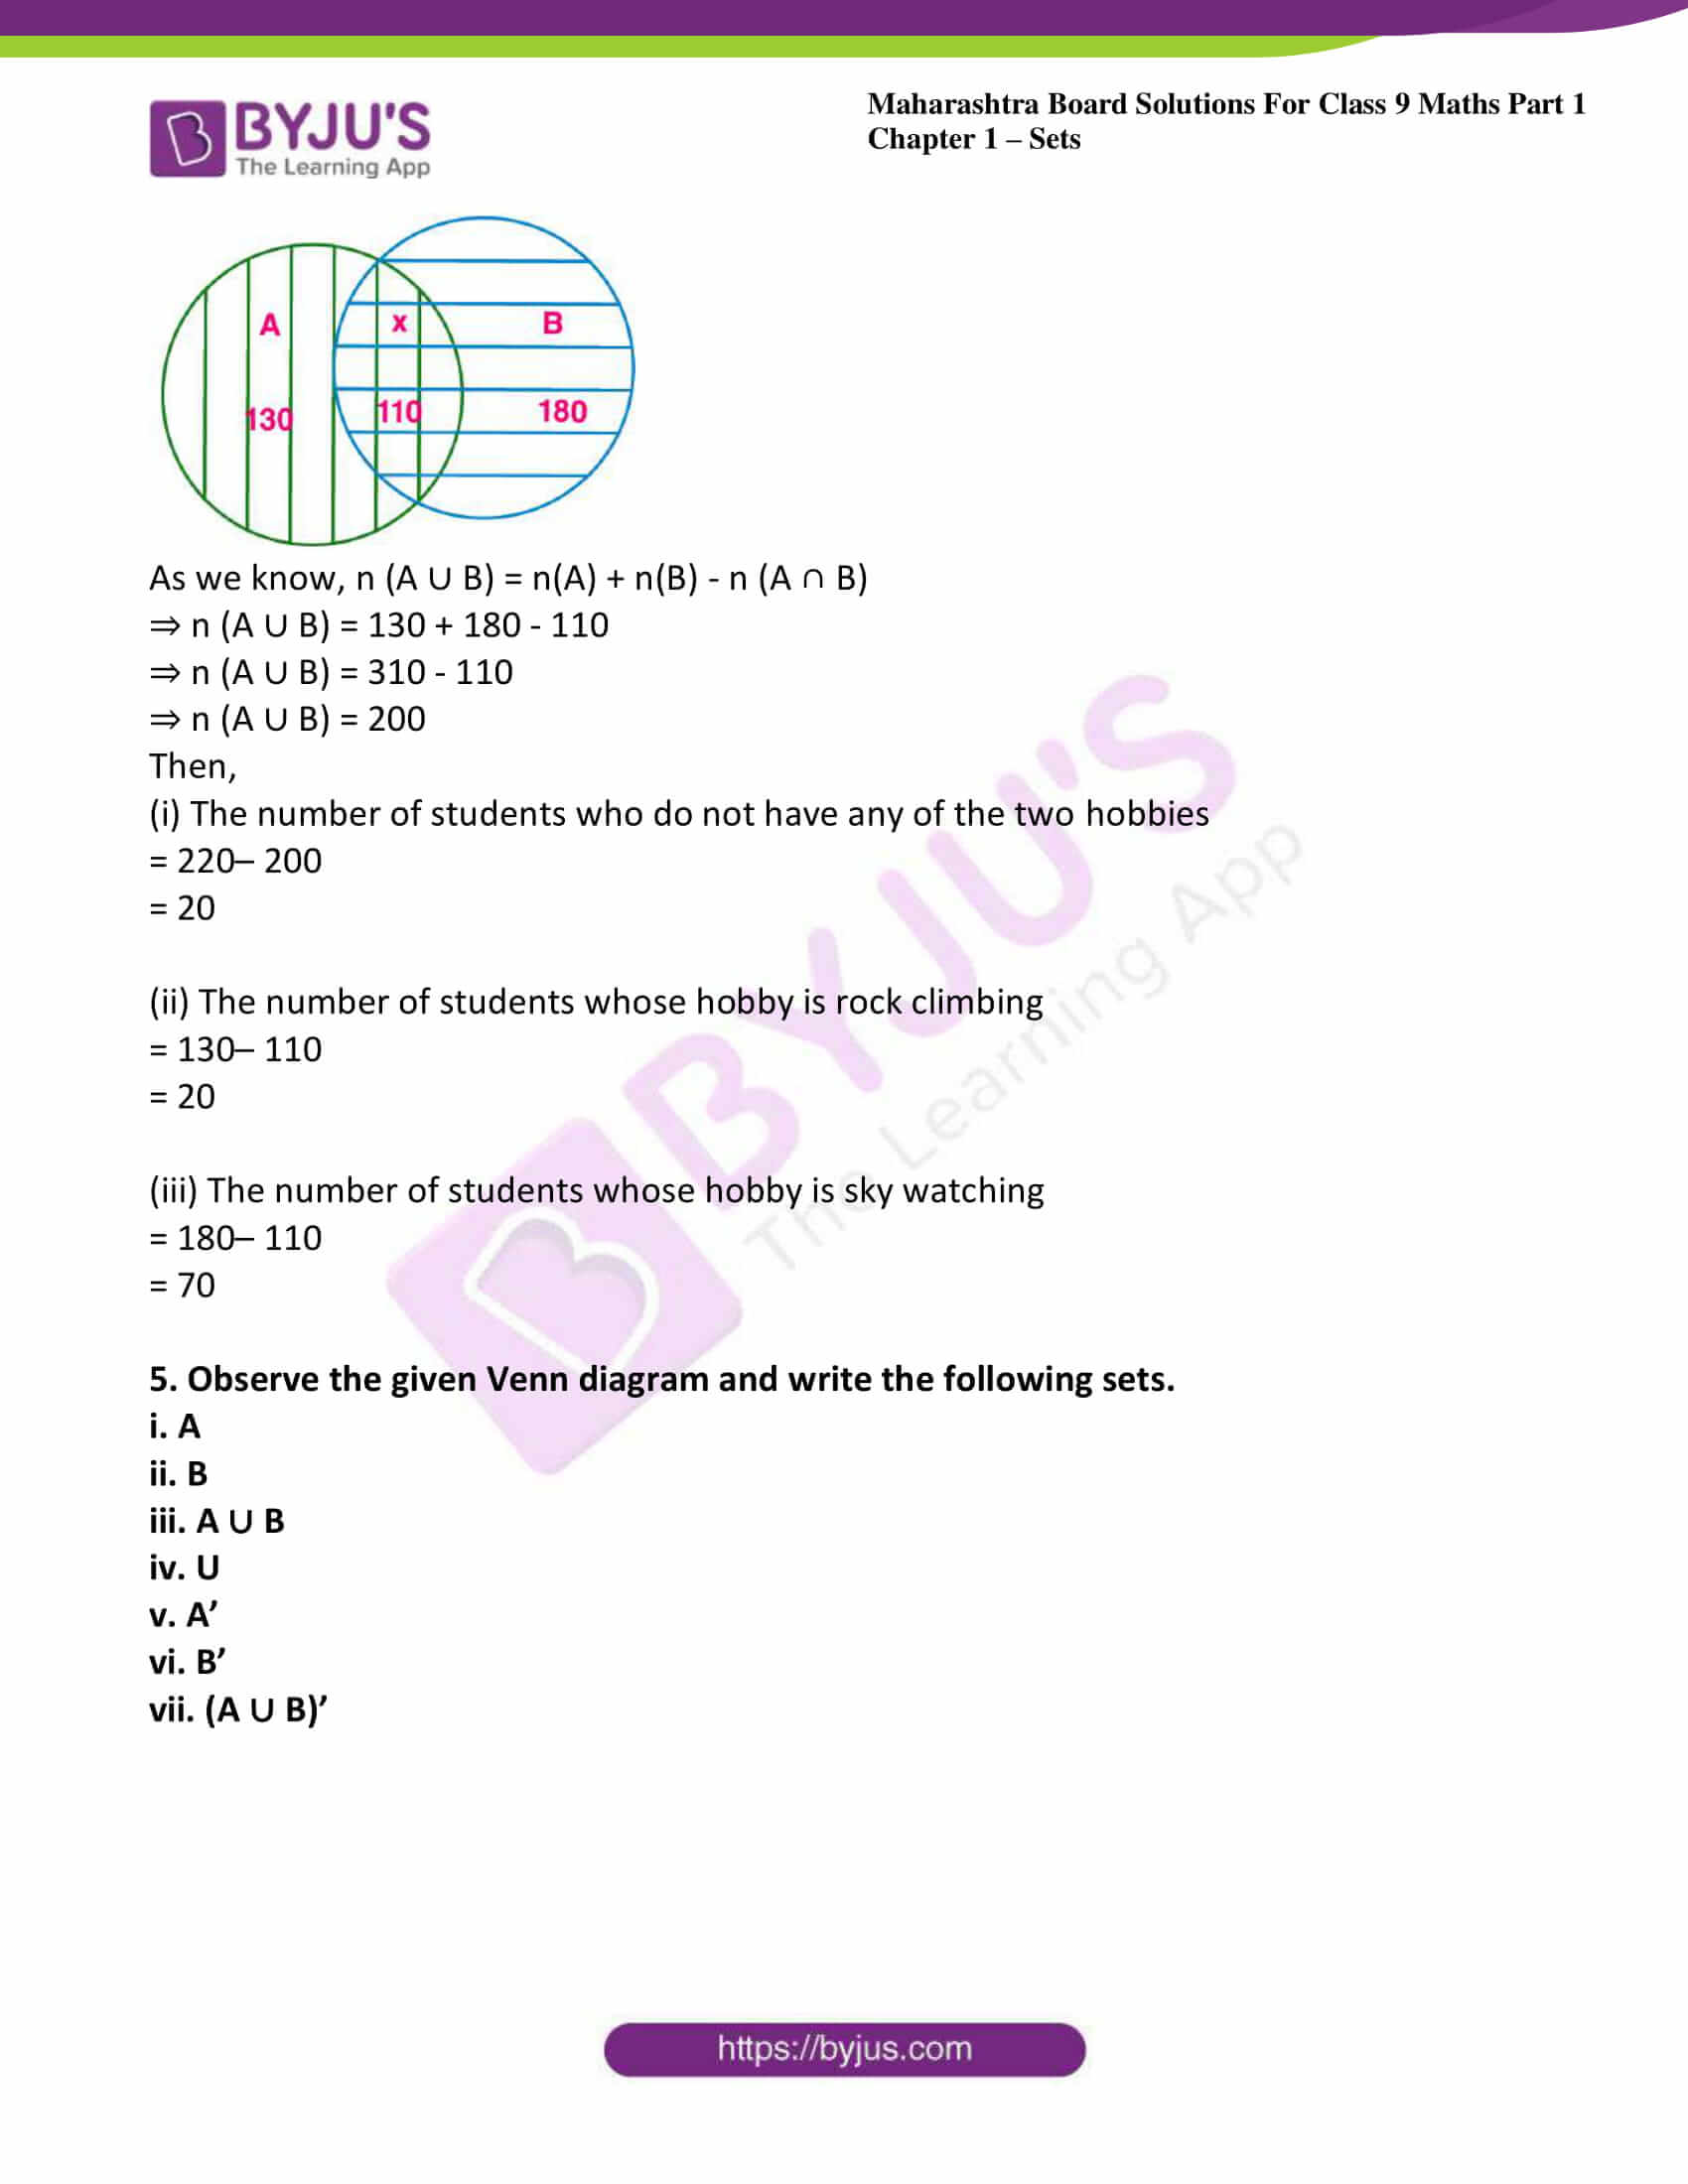 msbshse sol class 9 maths part 1 chapter 1 sets 15